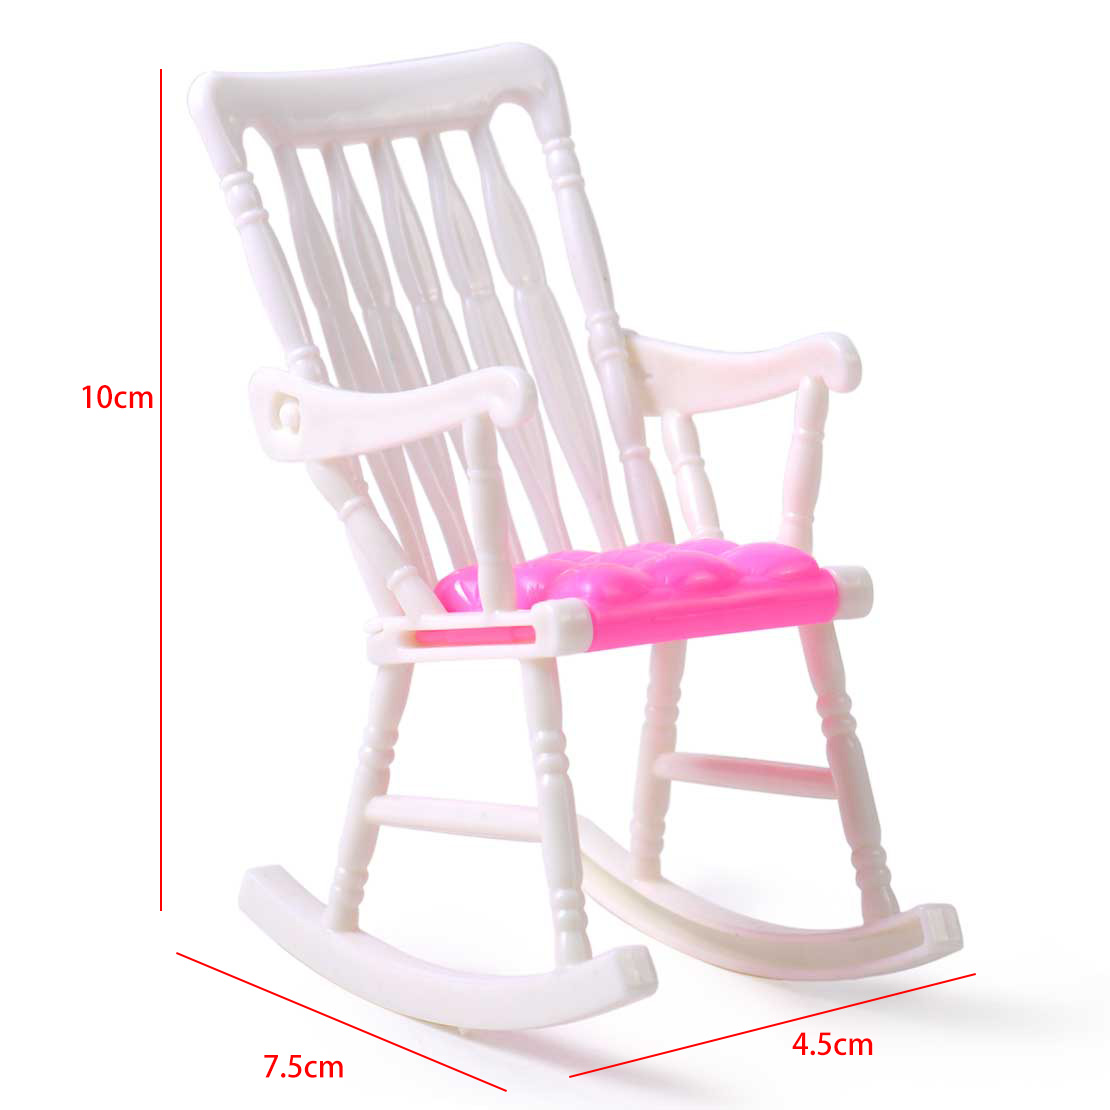 for lovely barbie doll room dollhouse nursery miniature furniture rocking chair ebay. Black Bedroom Furniture Sets. Home Design Ideas